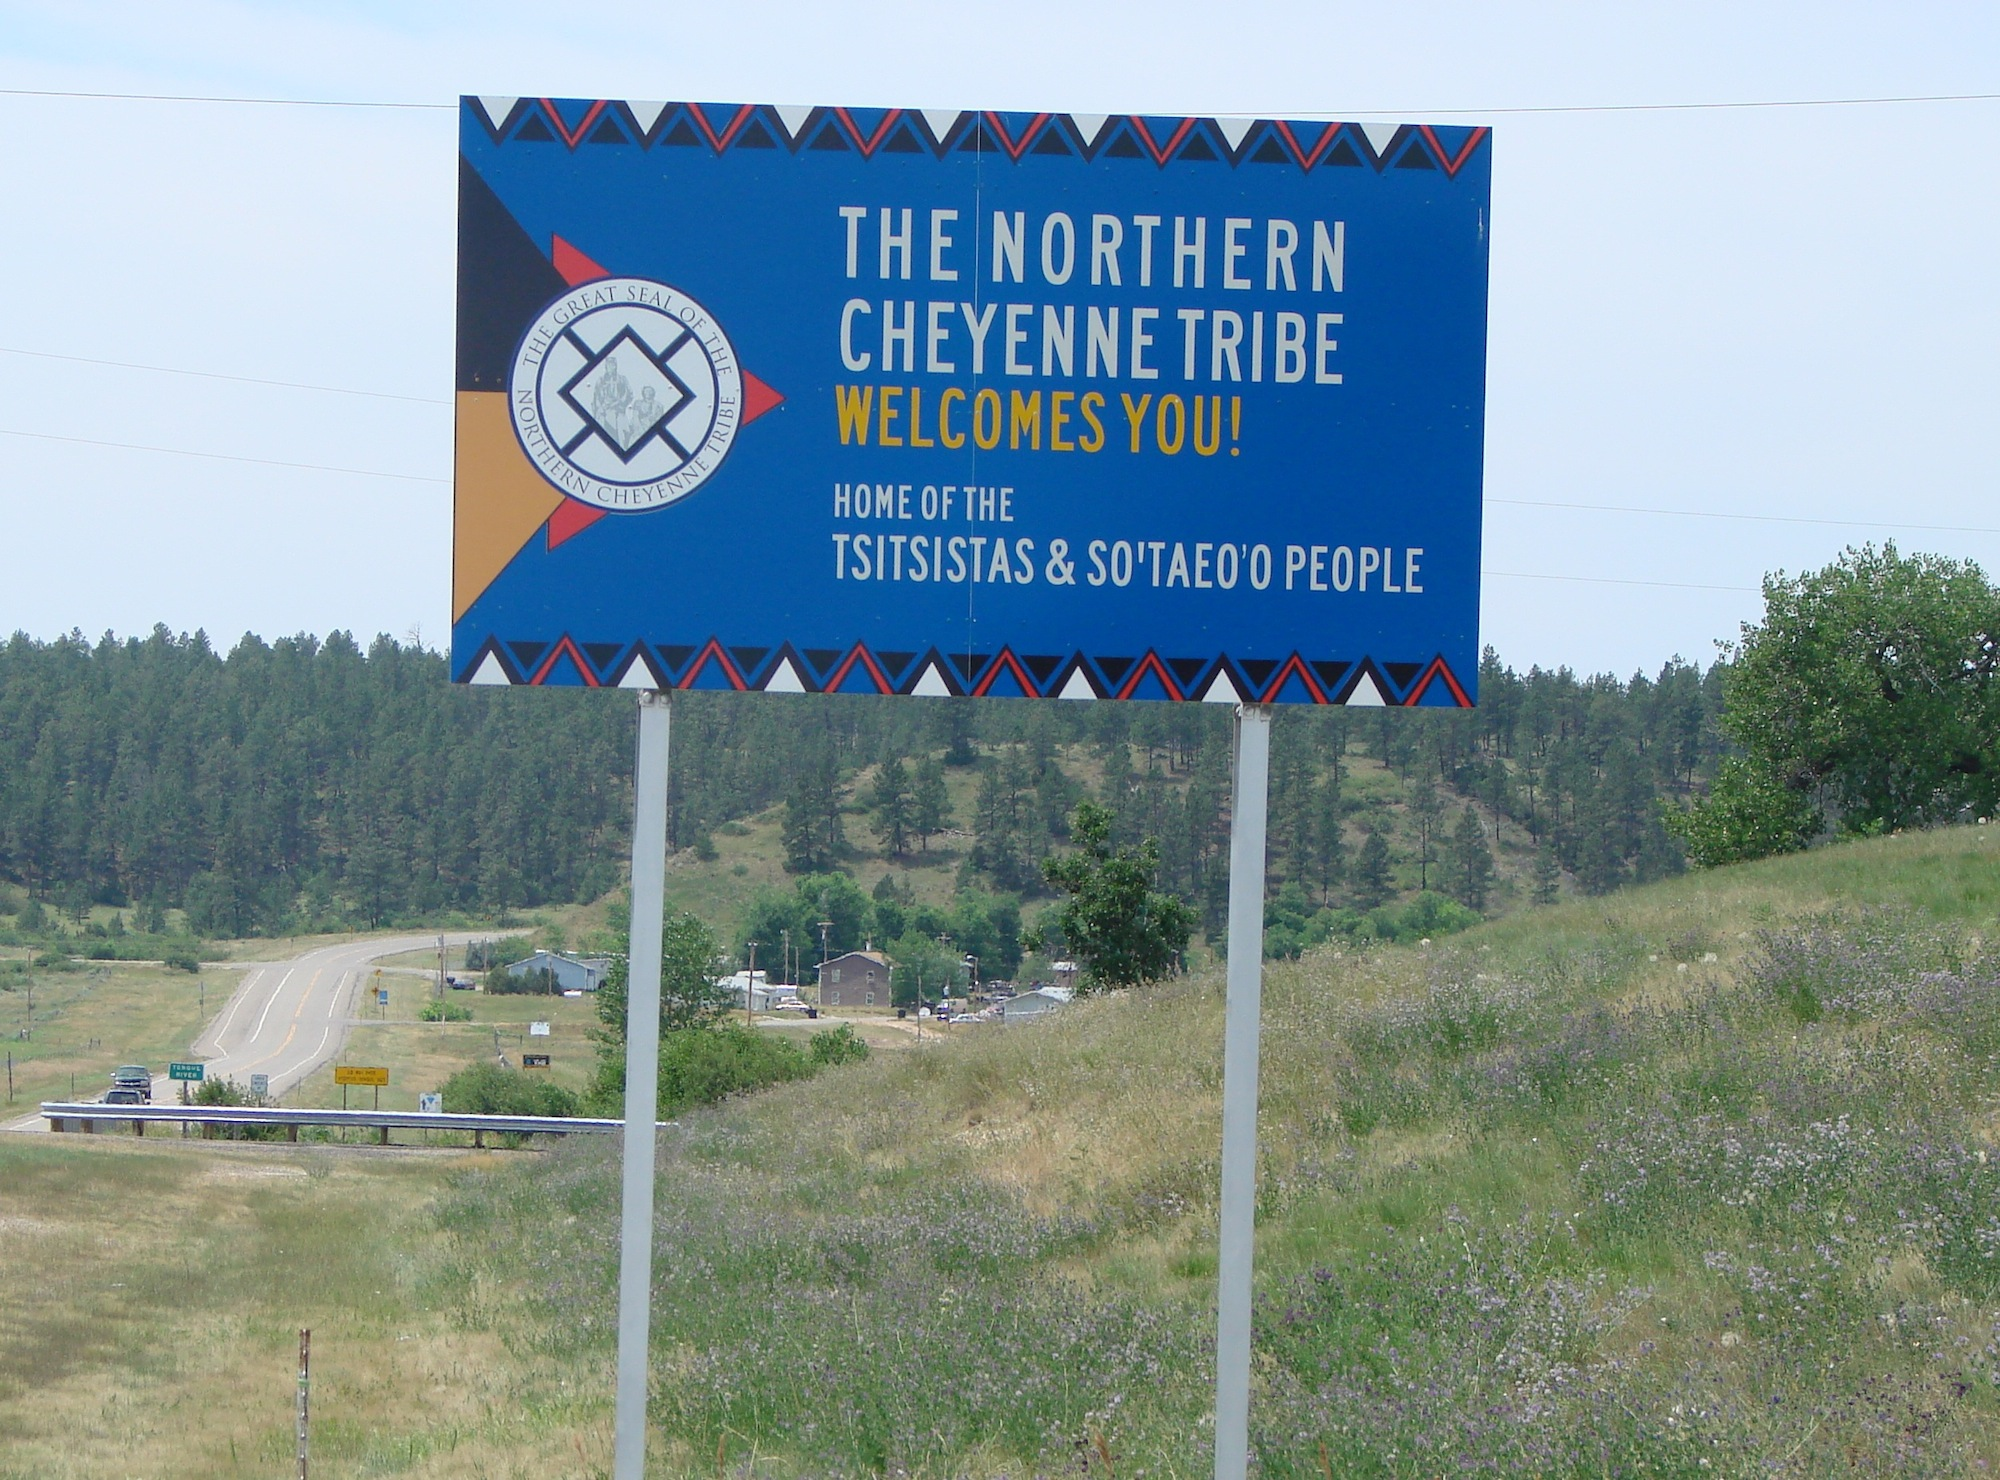 Northern Cheyenne Tribe orders curfew after shooting incident